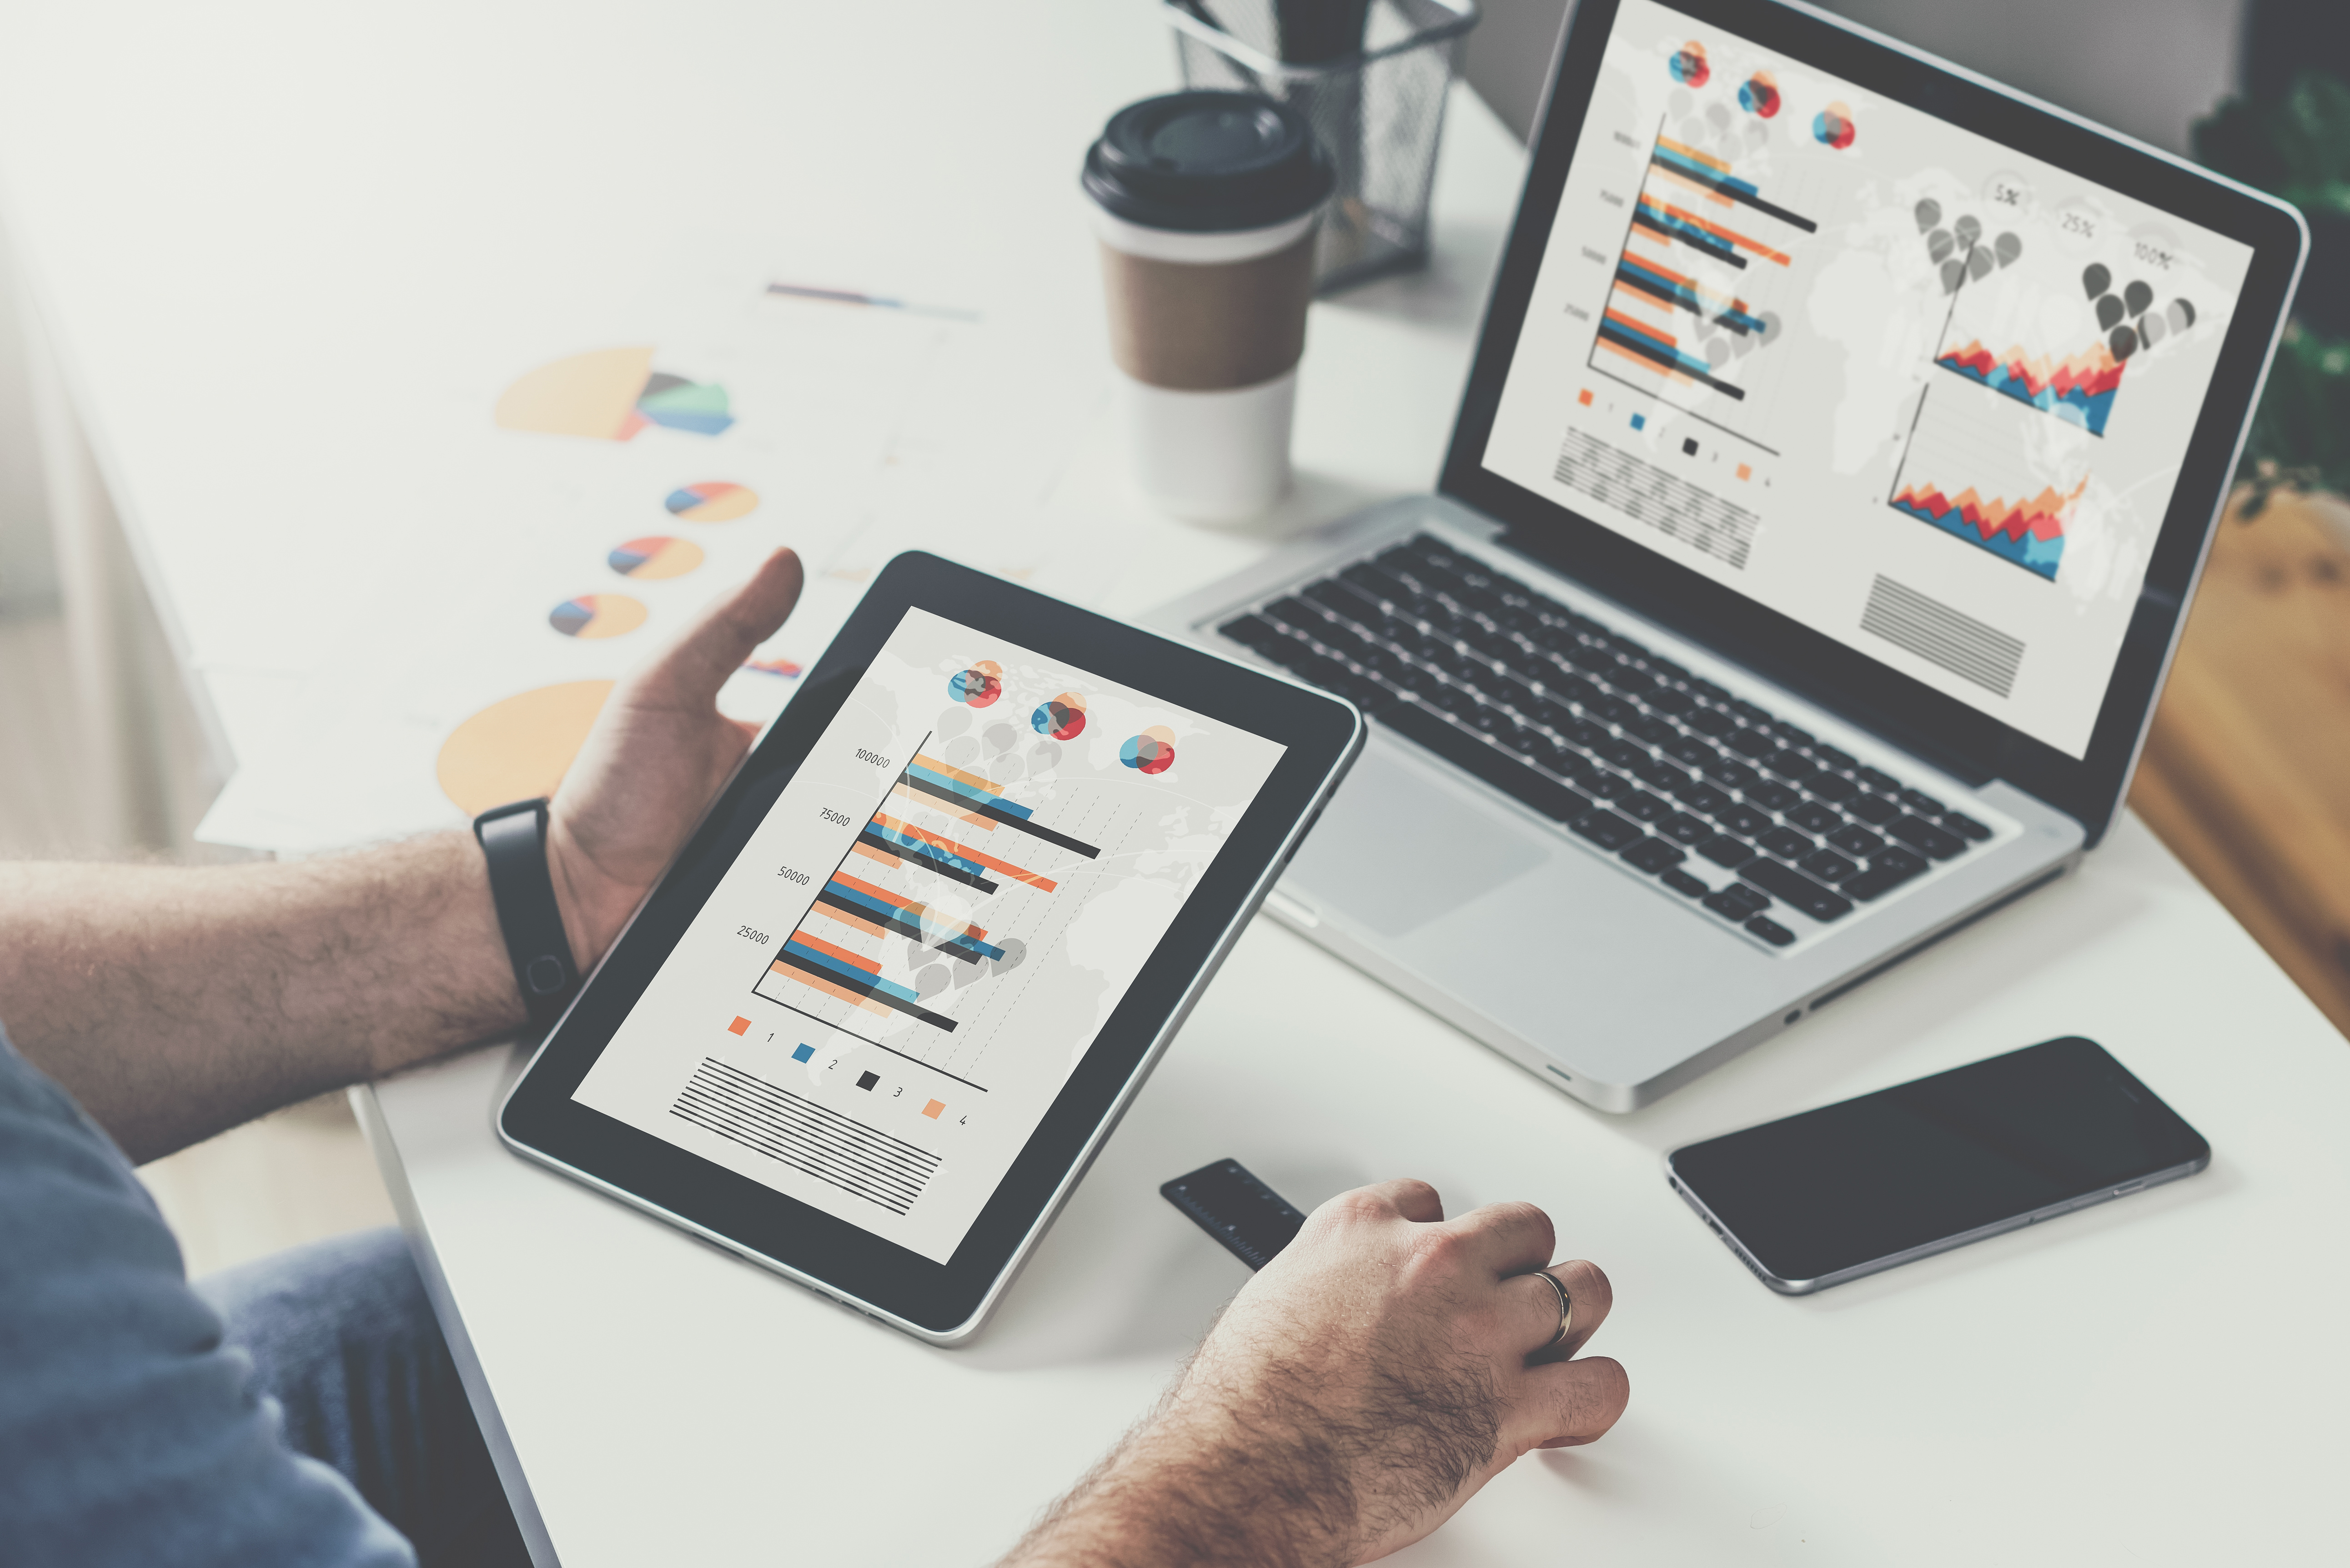 Laptops or tablets - which would be best for my business